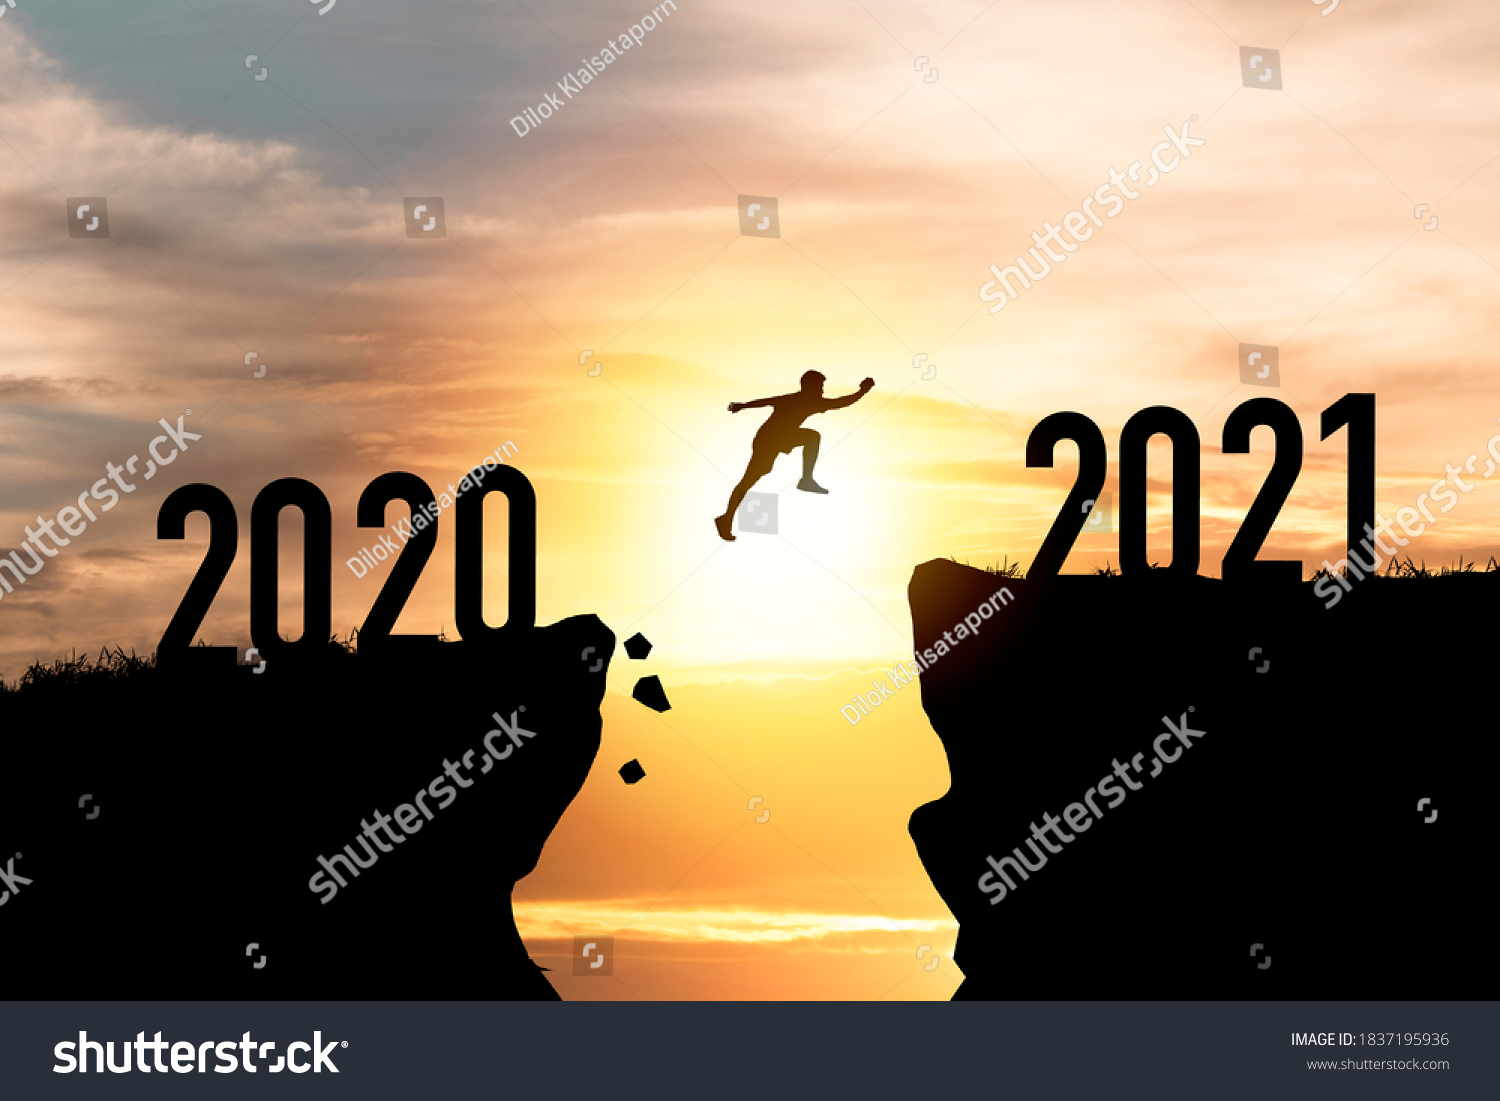 Welcome merry Christmas and happy new year in 2021,Silhouette Man jumping from 2020 cliff to 2021 cliff with cloud sky and sunlight. #1837195936